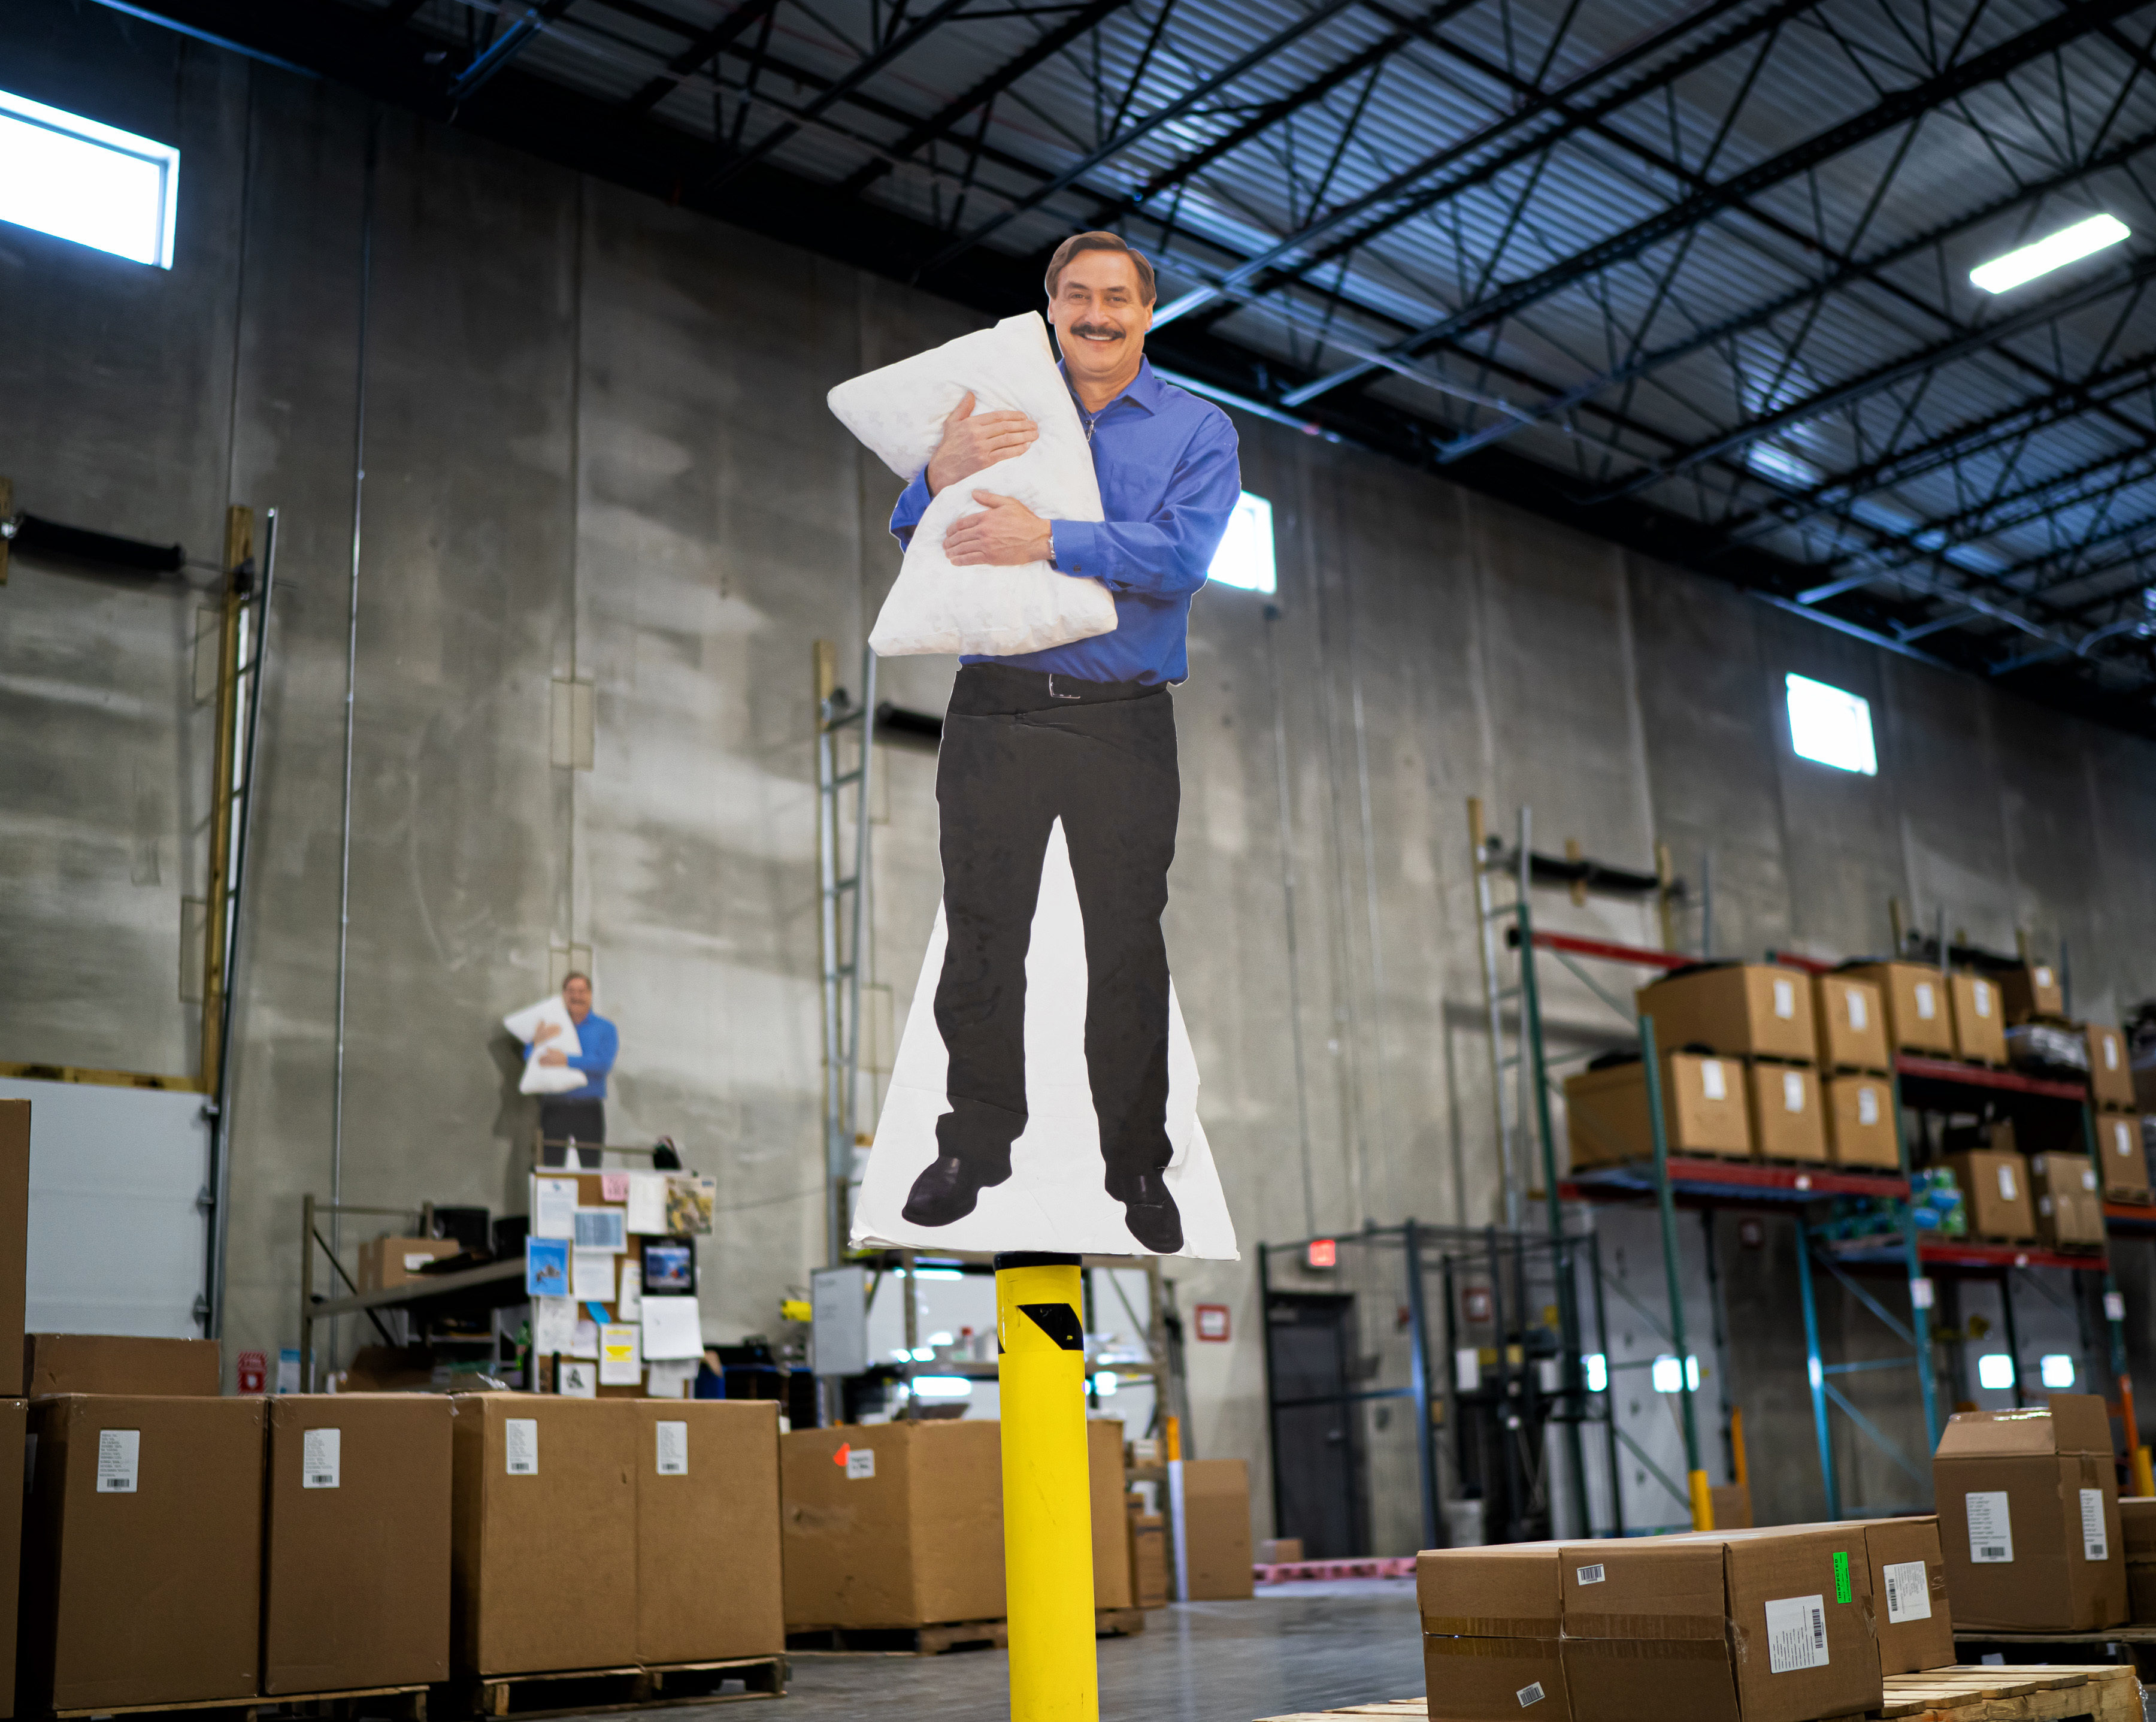 Even when he's not there, Lindell's presence looms large at MyPillow's main factory in Shakopee.